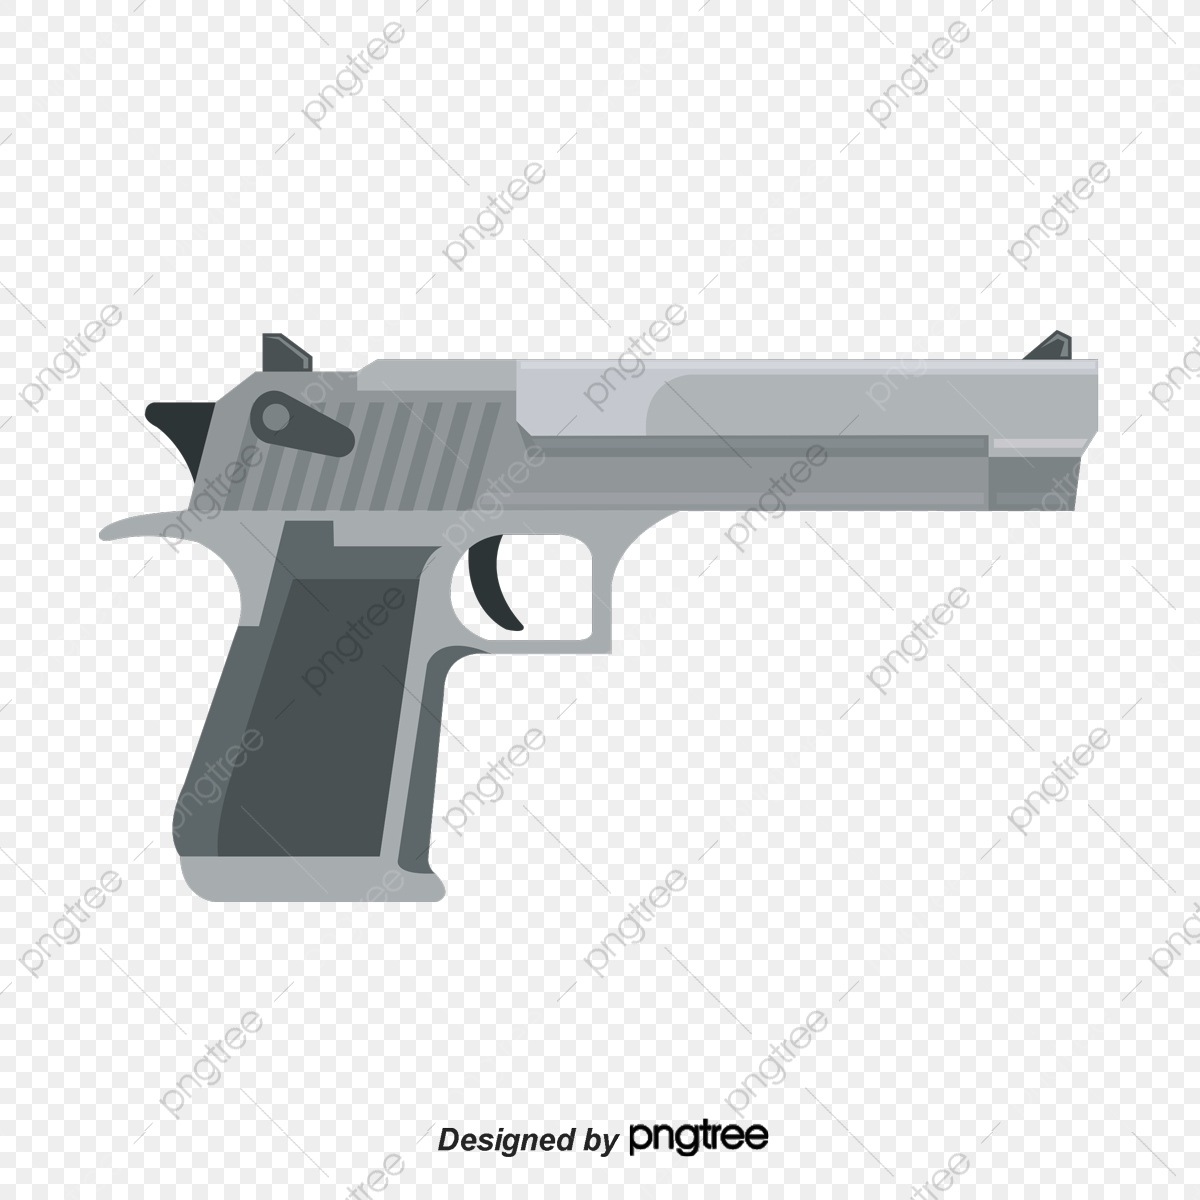 pistol vector png vector psd and clipart with transparent background for free download pngtree https pngtree com freepng pistol 1652673 html